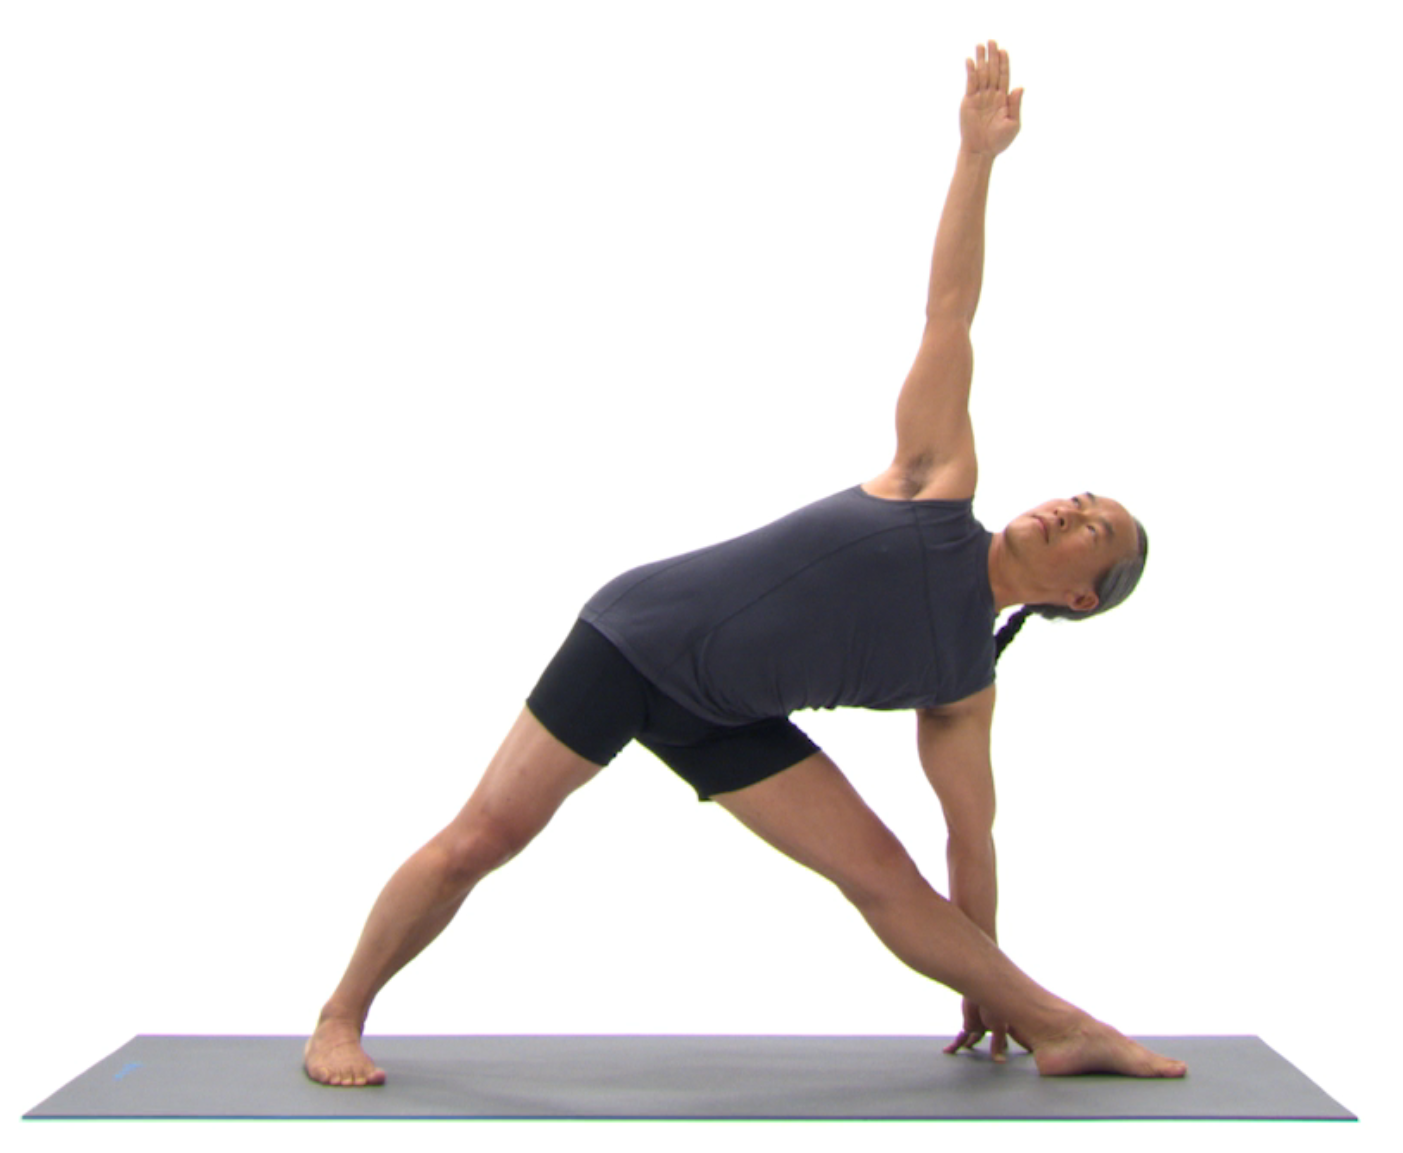 Give Yoga A Go - It's Well Worth The Effort